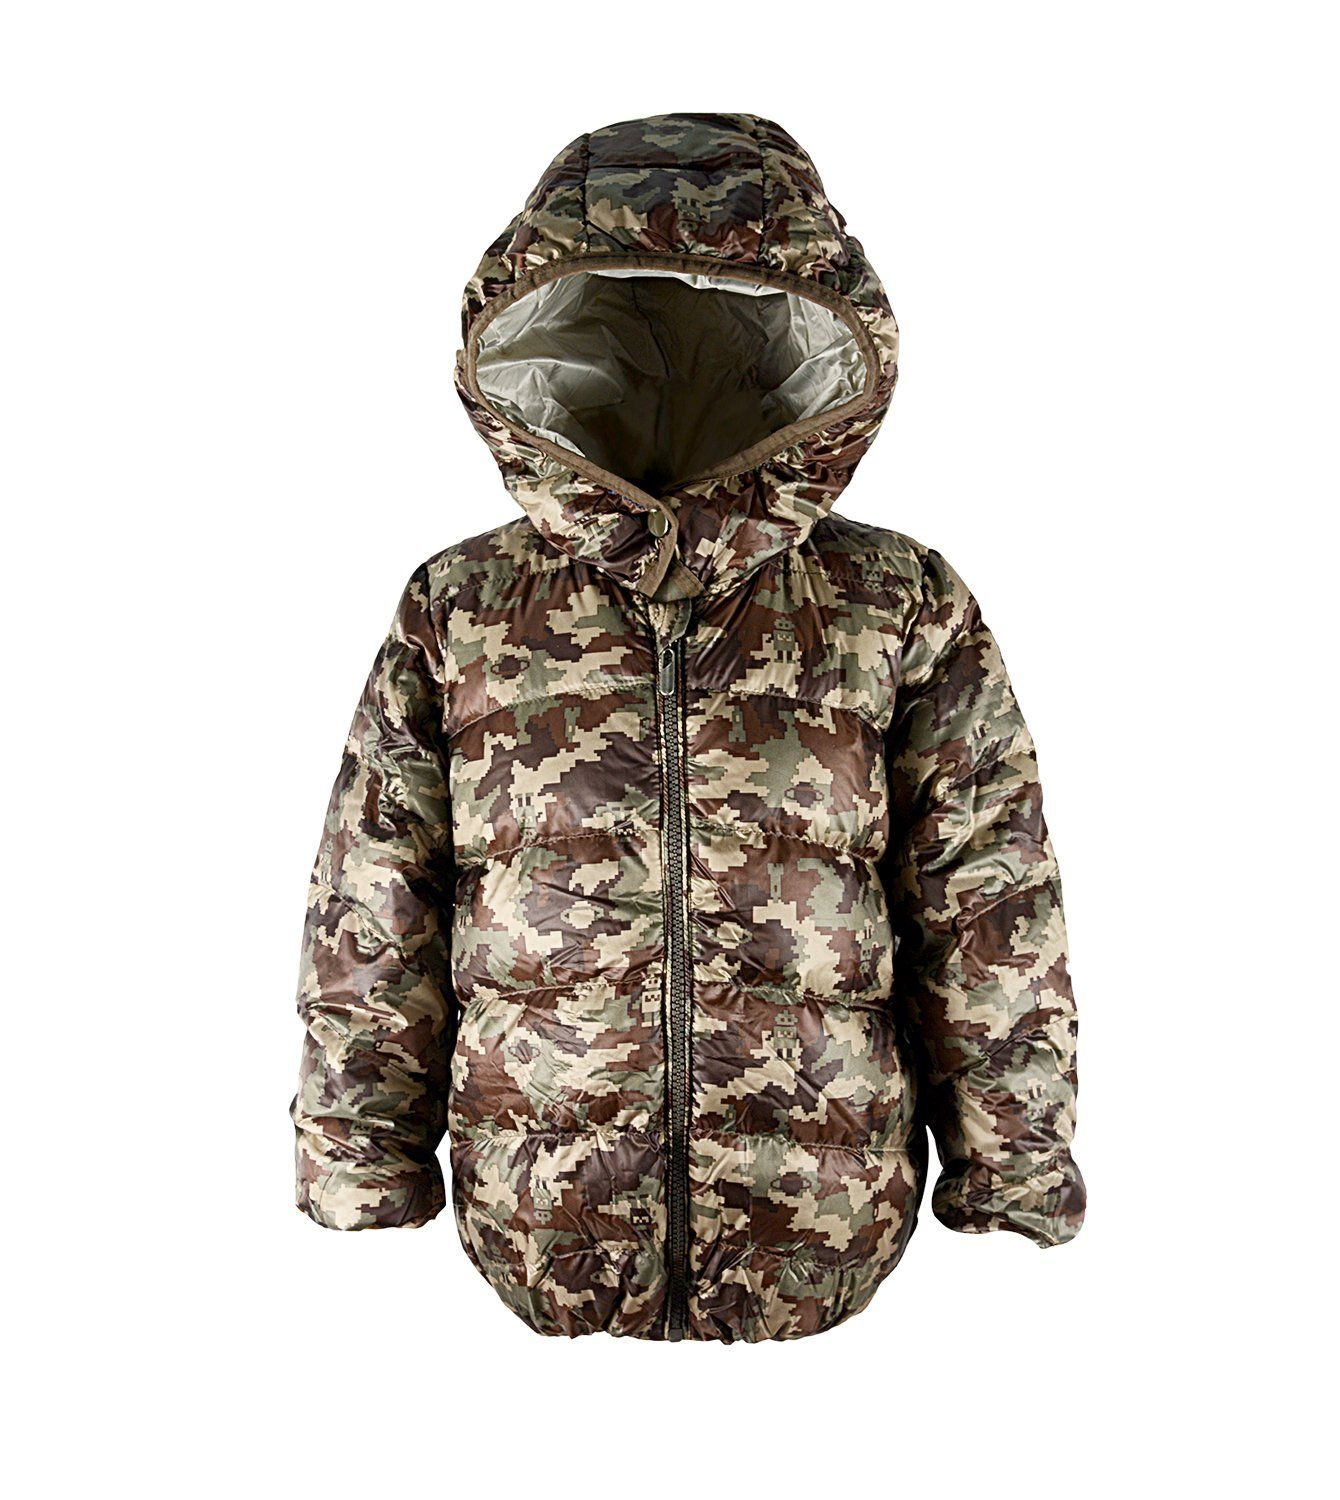 f820f8806 Zando Hooded Printing Warm Down Jacket with Hood Winter Light Weight ...